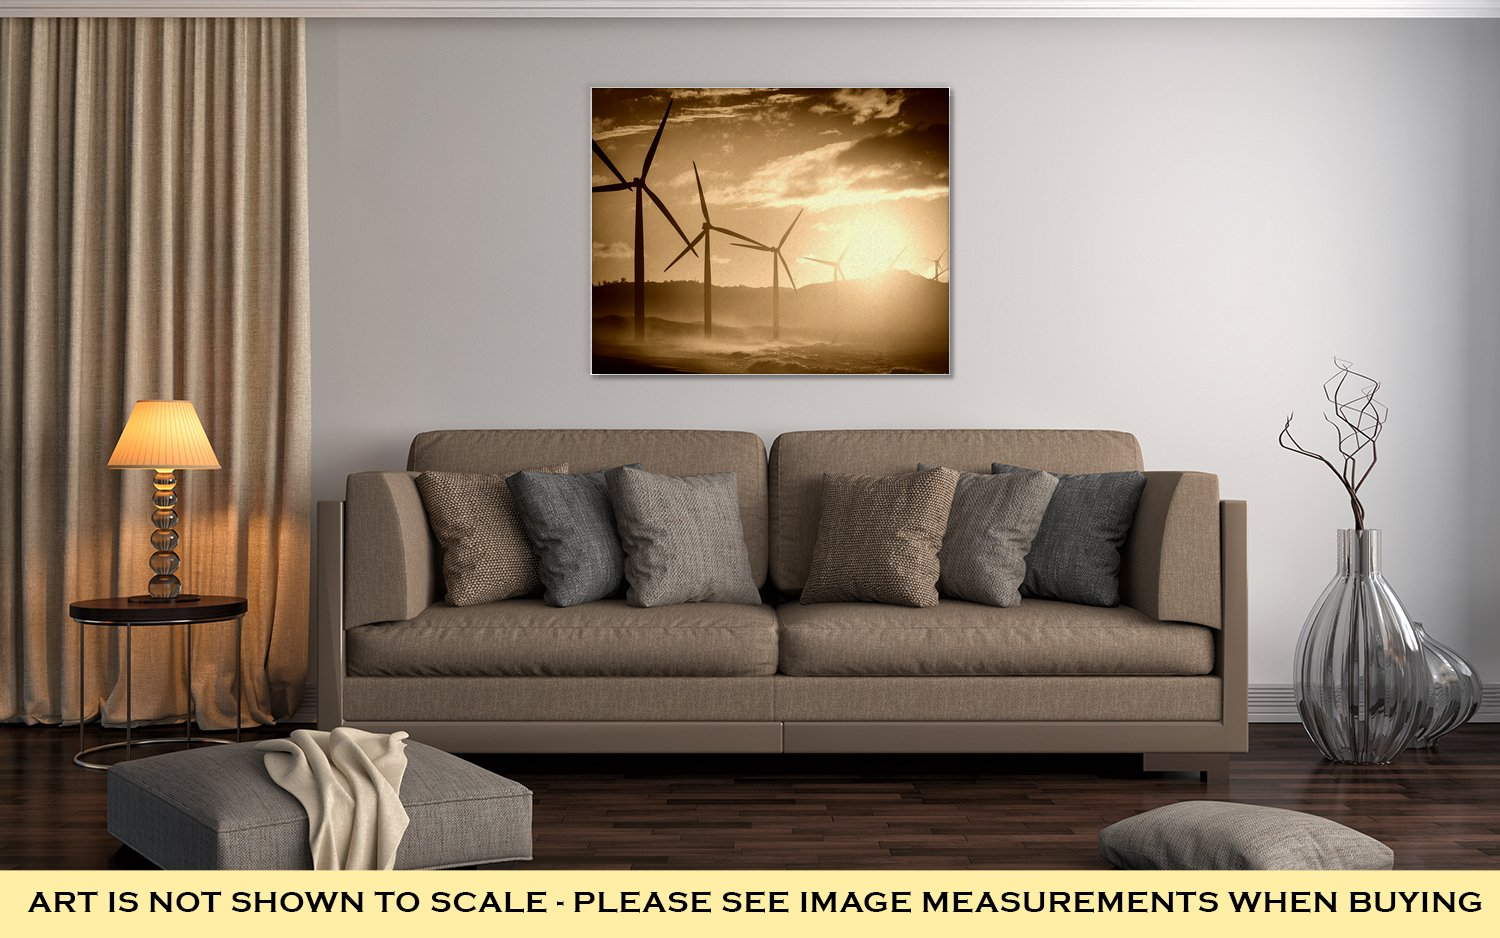 Ashley Canvas Wind Turbine Power Generators Silhouettes At Ocean Coastline At Sunset, Home Office, Ready to Hang, Sepia 20x25, AG5858548